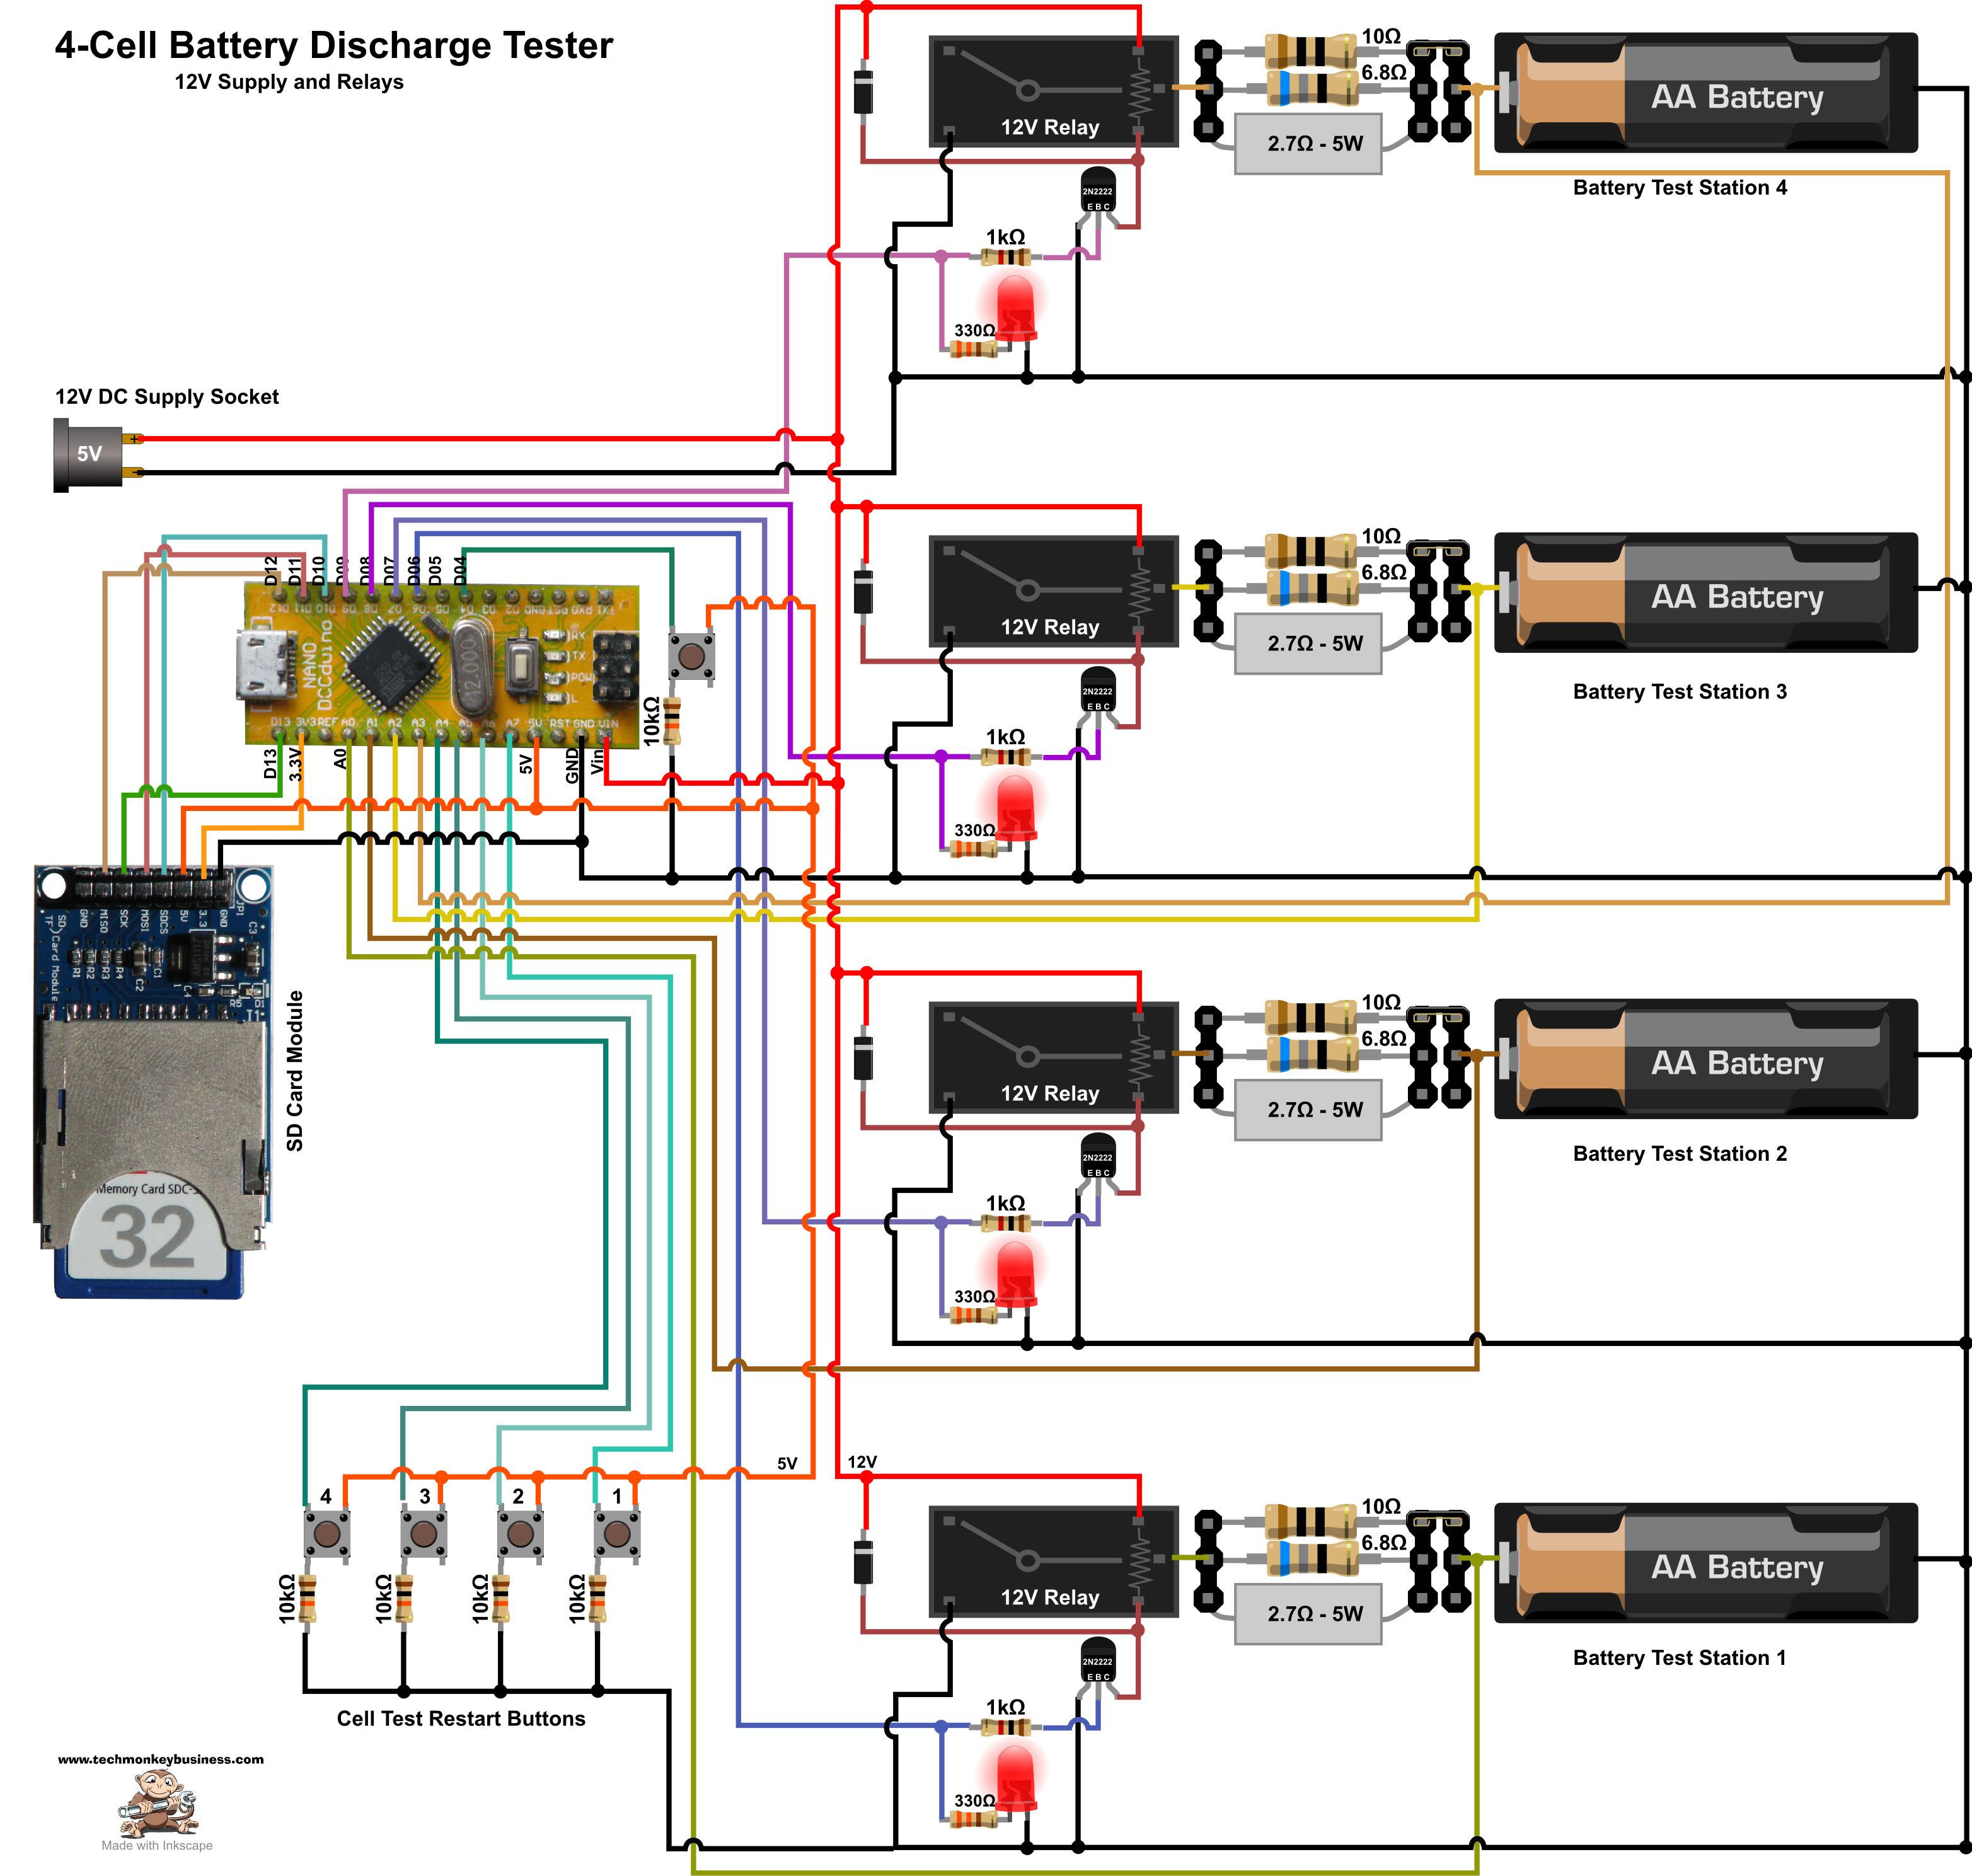 Battery Tester Schematic : Battery discharge tester